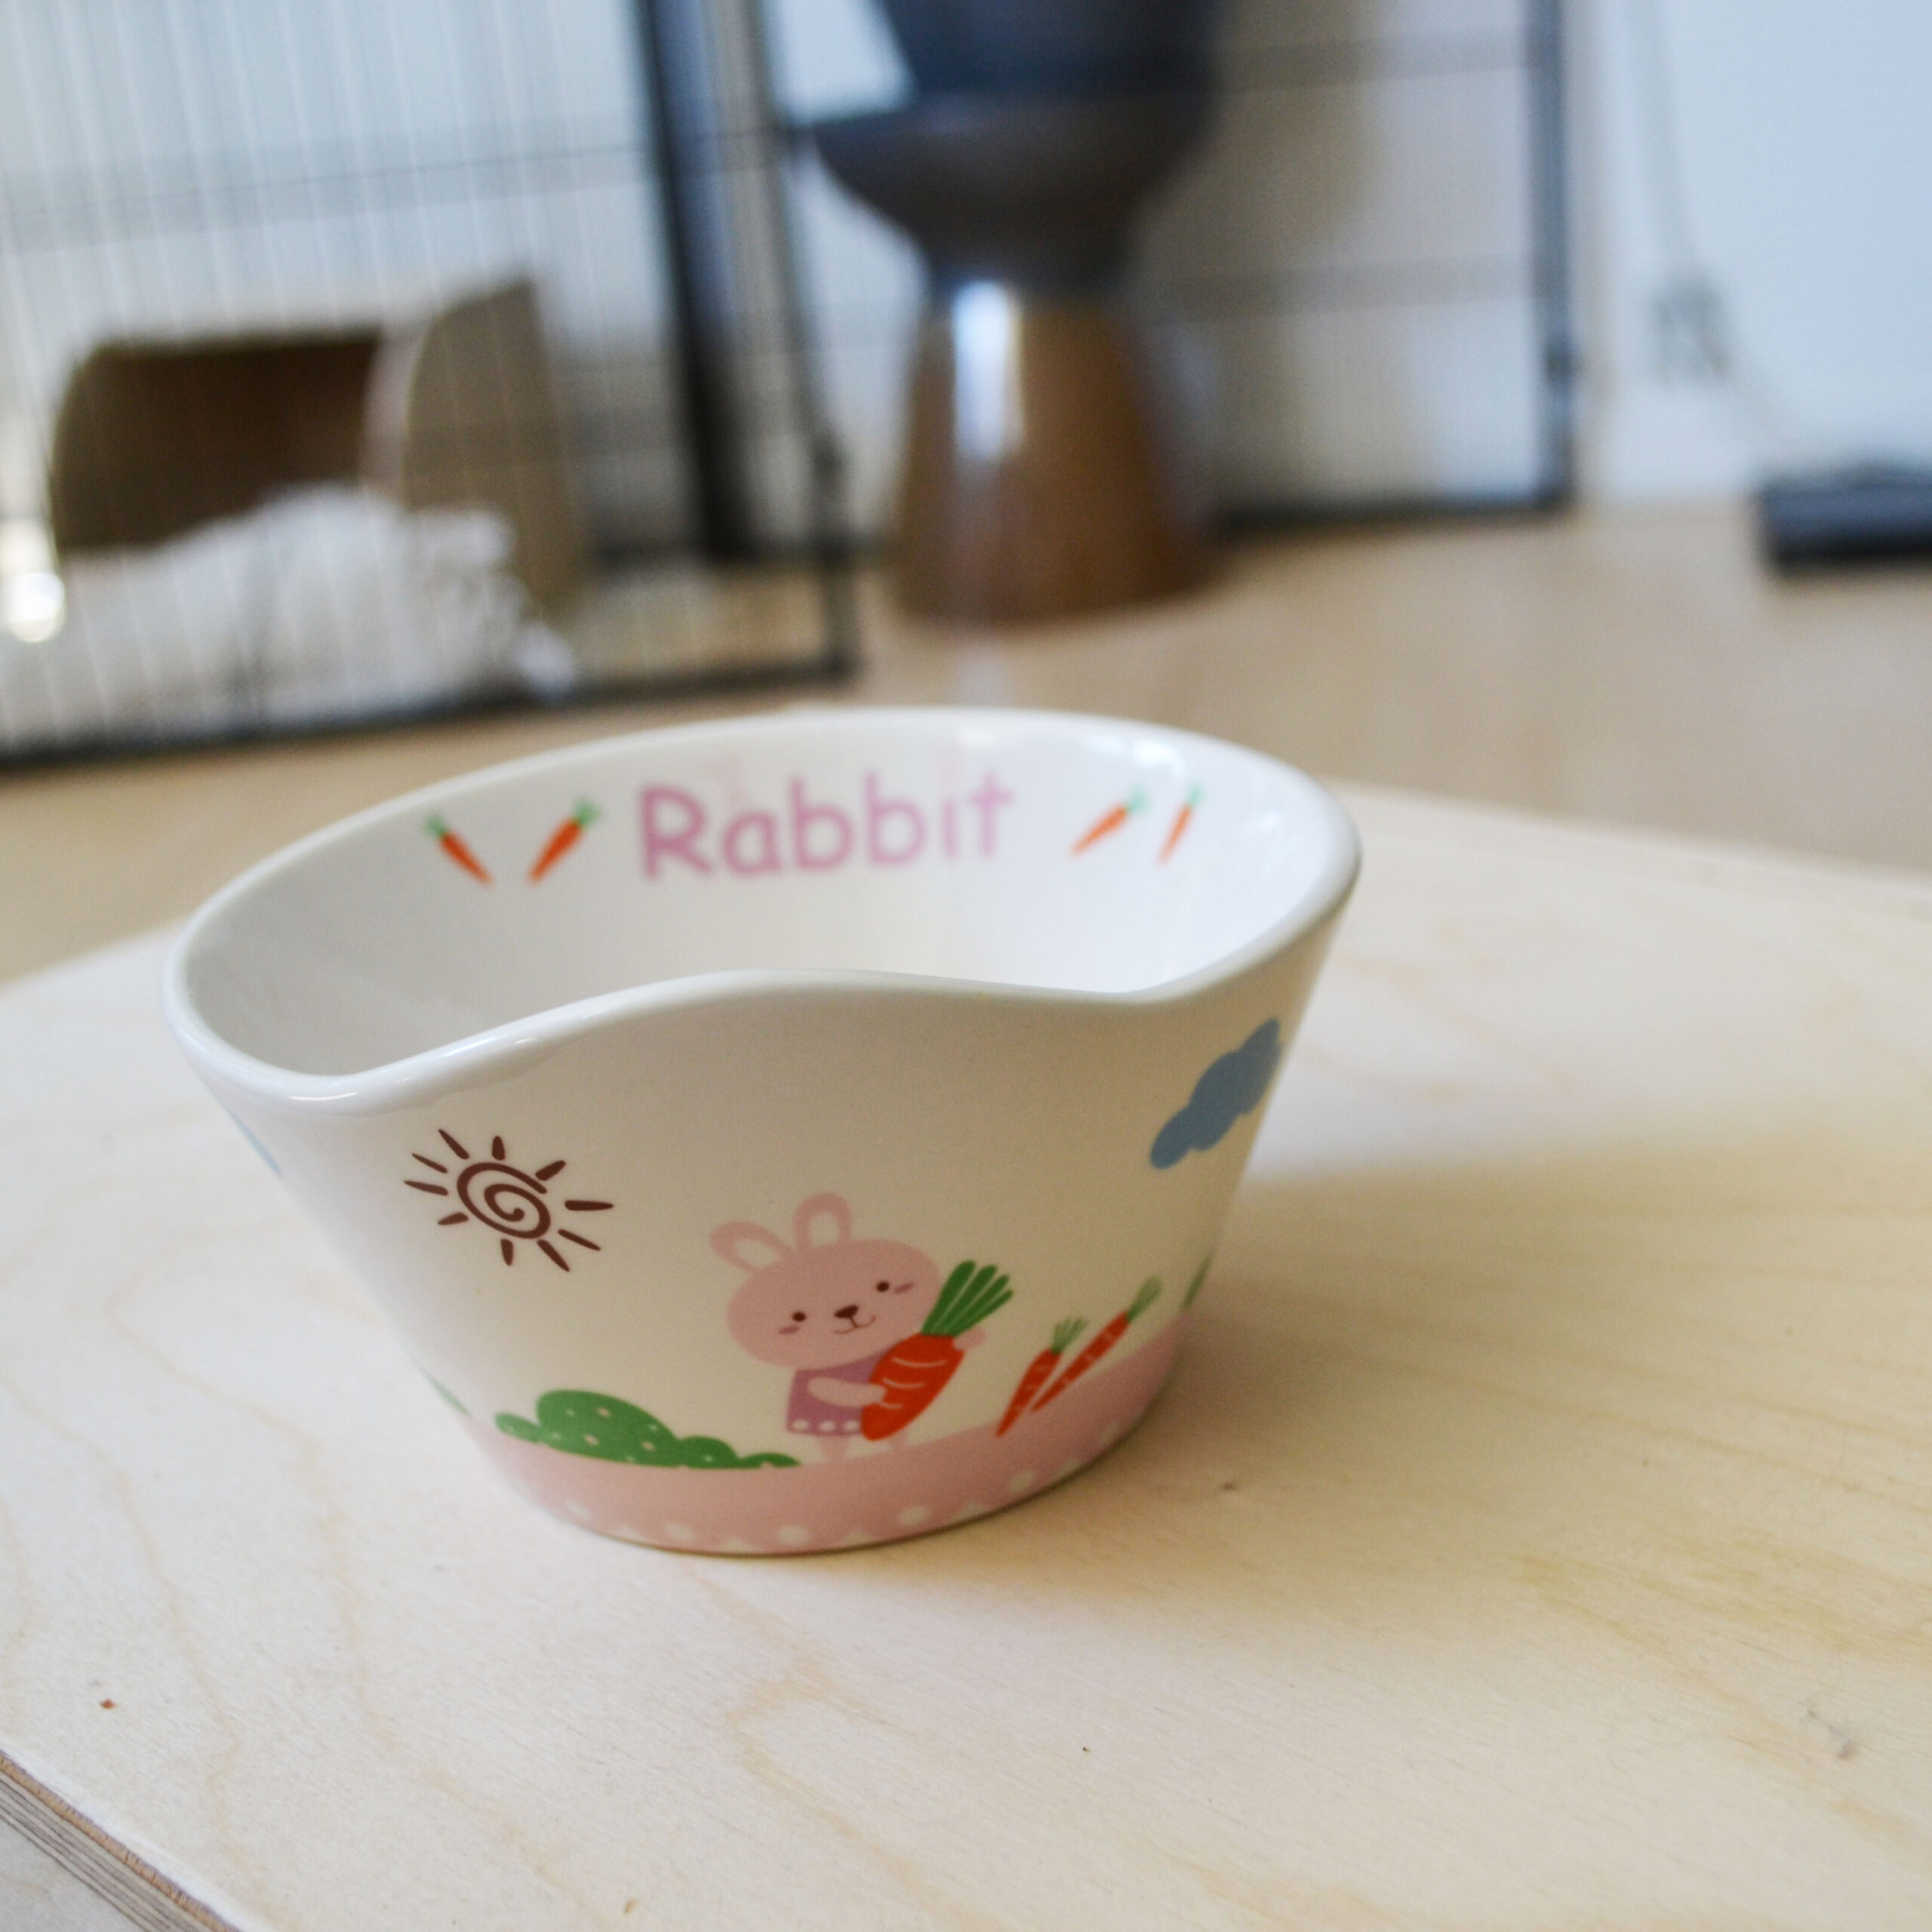 pink food bowl with rabbit and flowers